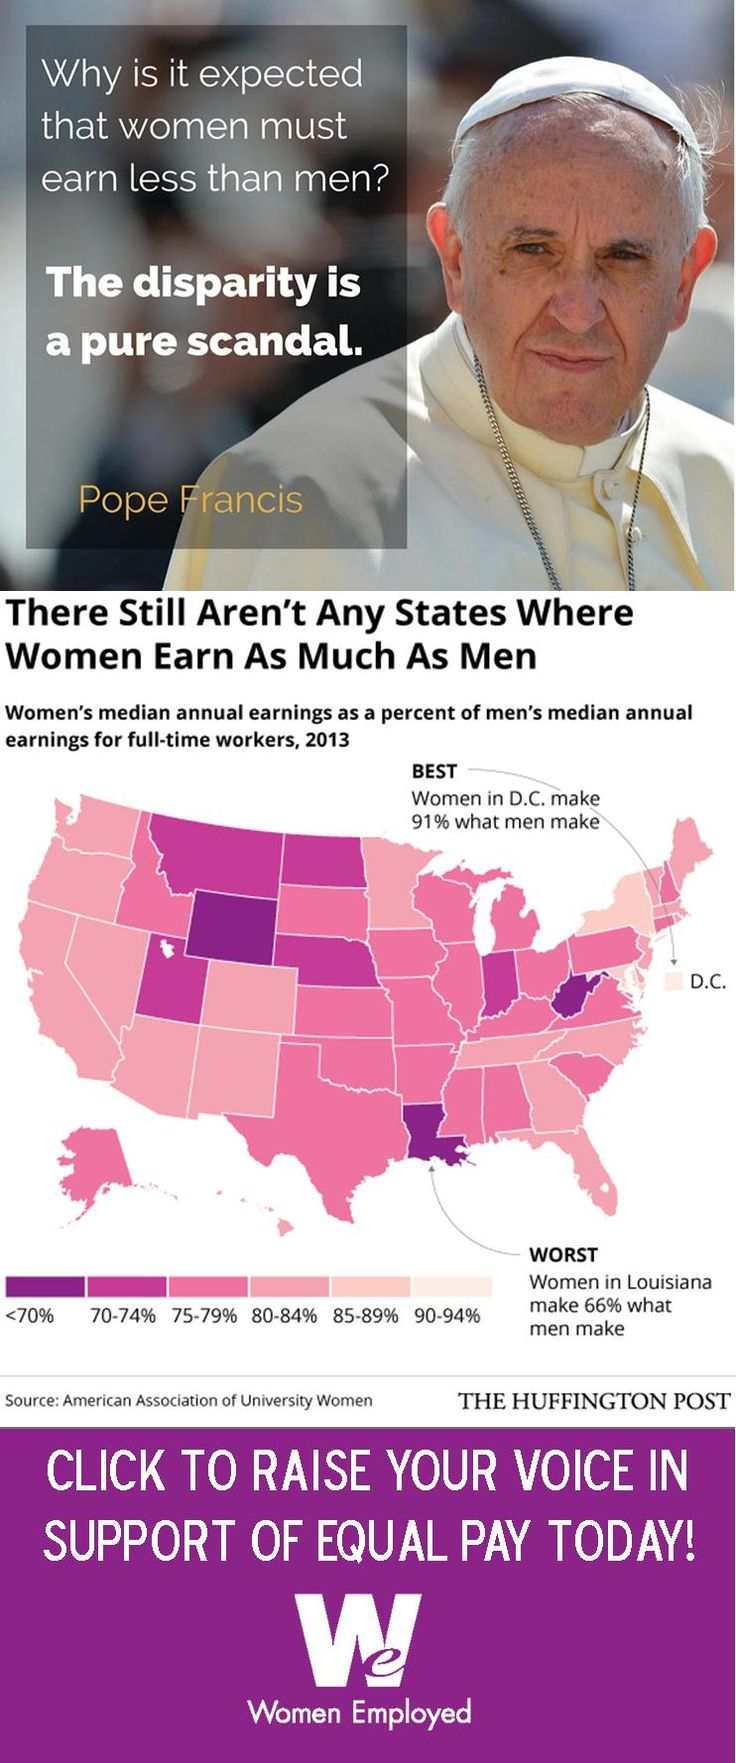 the issue of gender wage gap in america Council of economic advisers issue brief april 2015 percent of individuals with a pension plan, 2013 gender pay gap: recent trends and explanations april 14 marks equal pay day, the day that represents how far into 2015 the average american woman has to work.